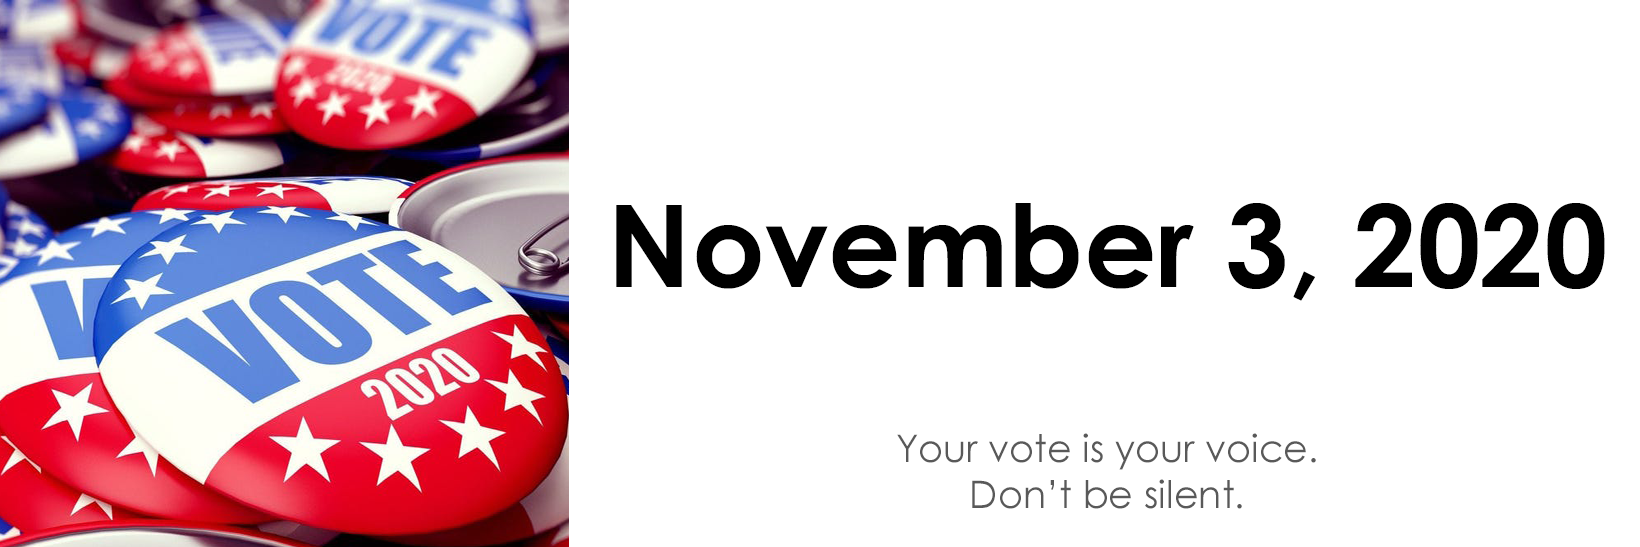 VOTE November 3, 2020. Your vote is your voice. Don't be silent.